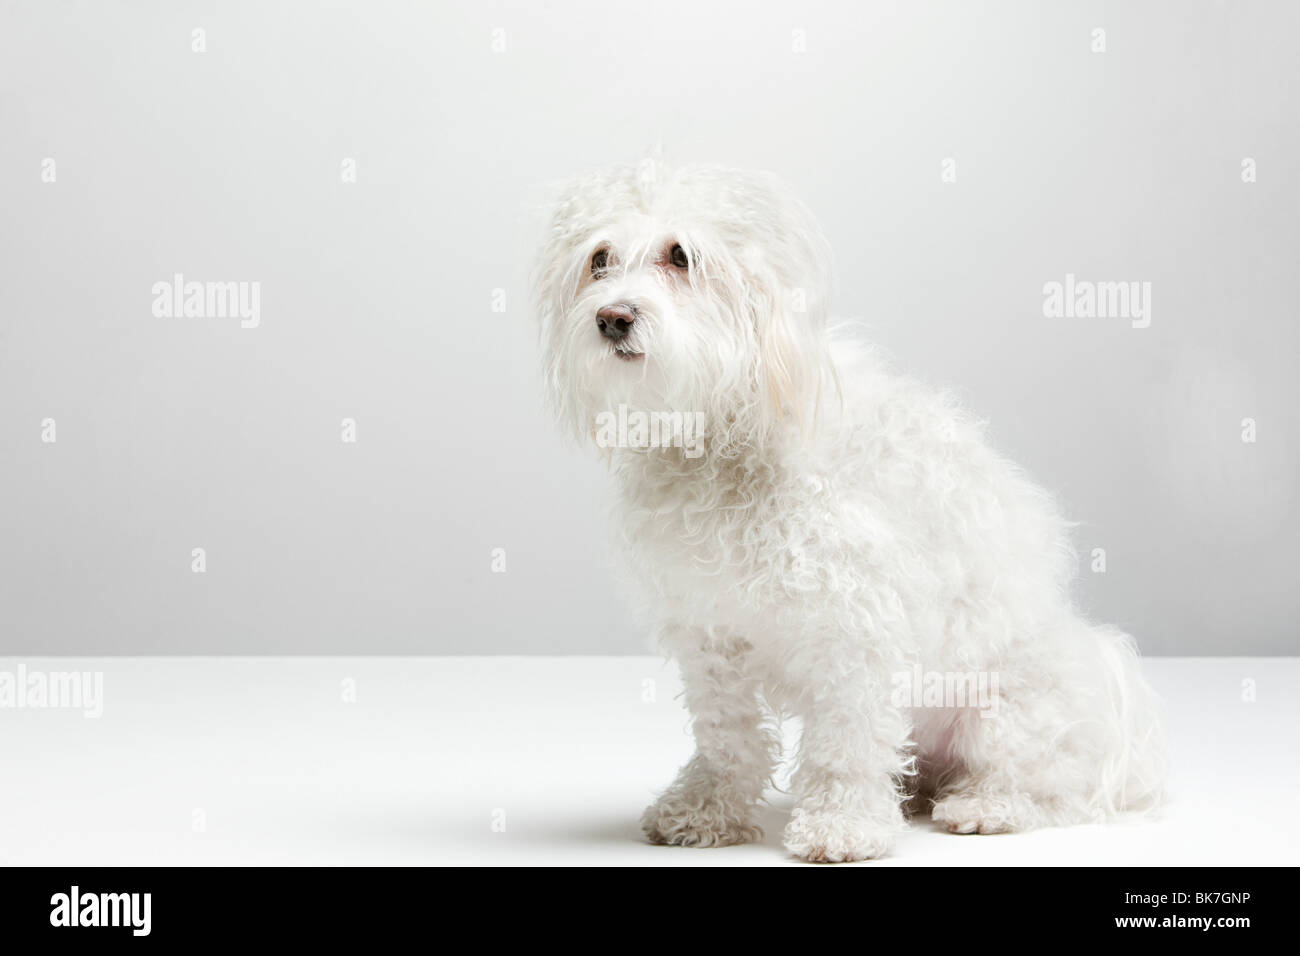 Portrait of a white dog - Stock Image